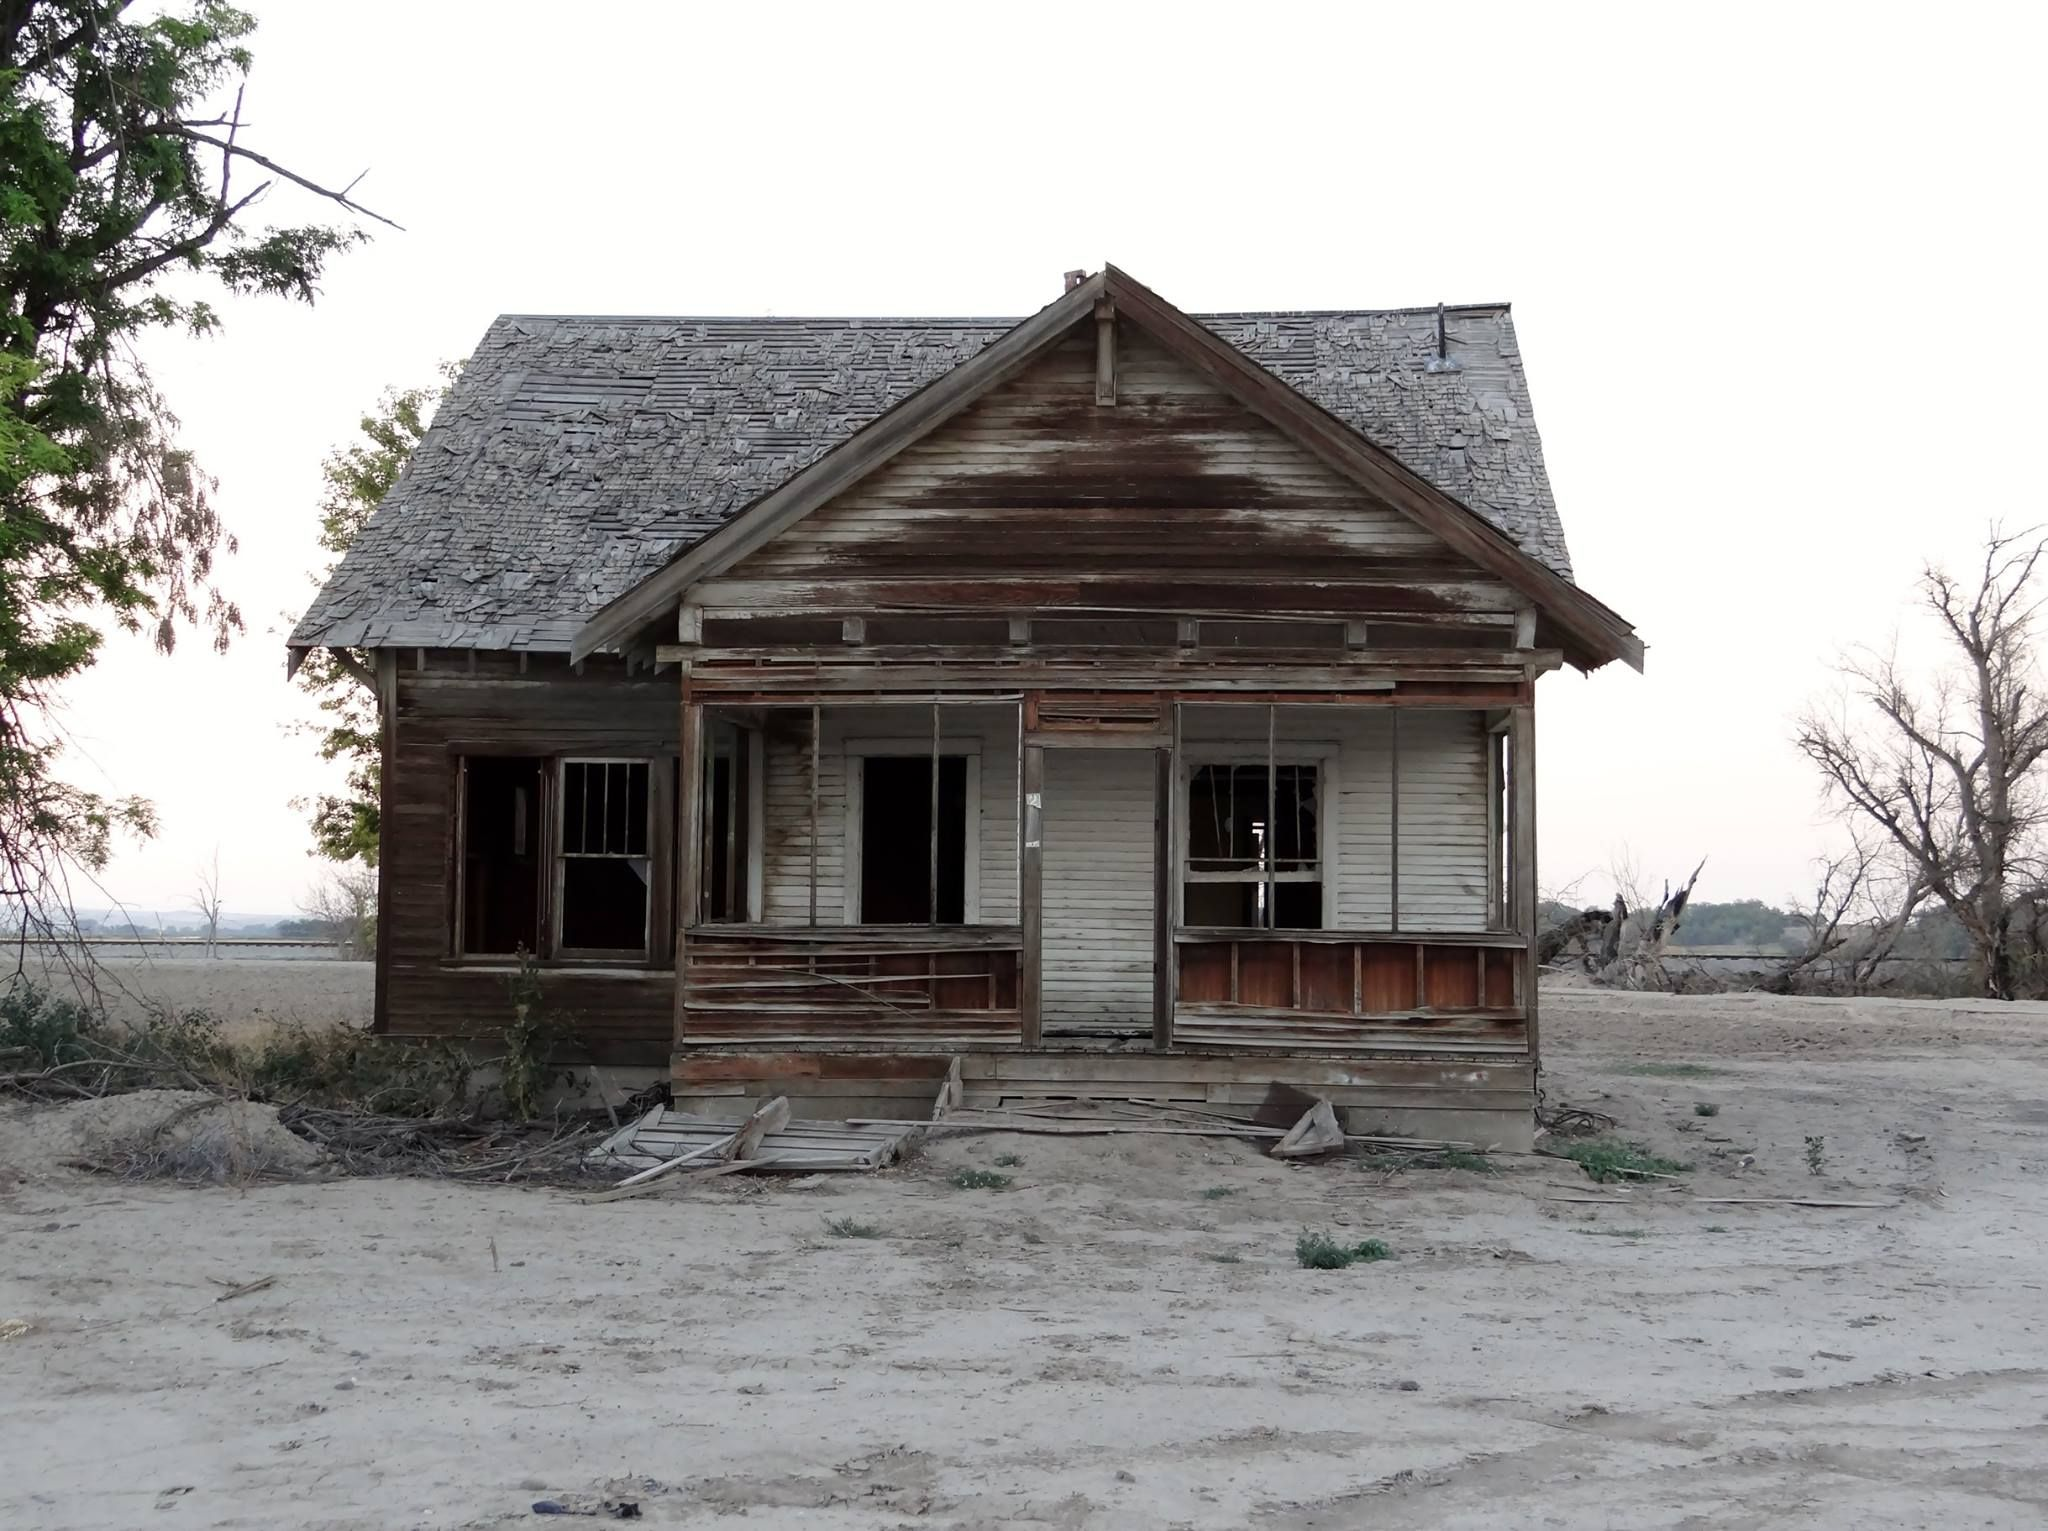 An old house I came across in Idaho on my drive home from Oregon...